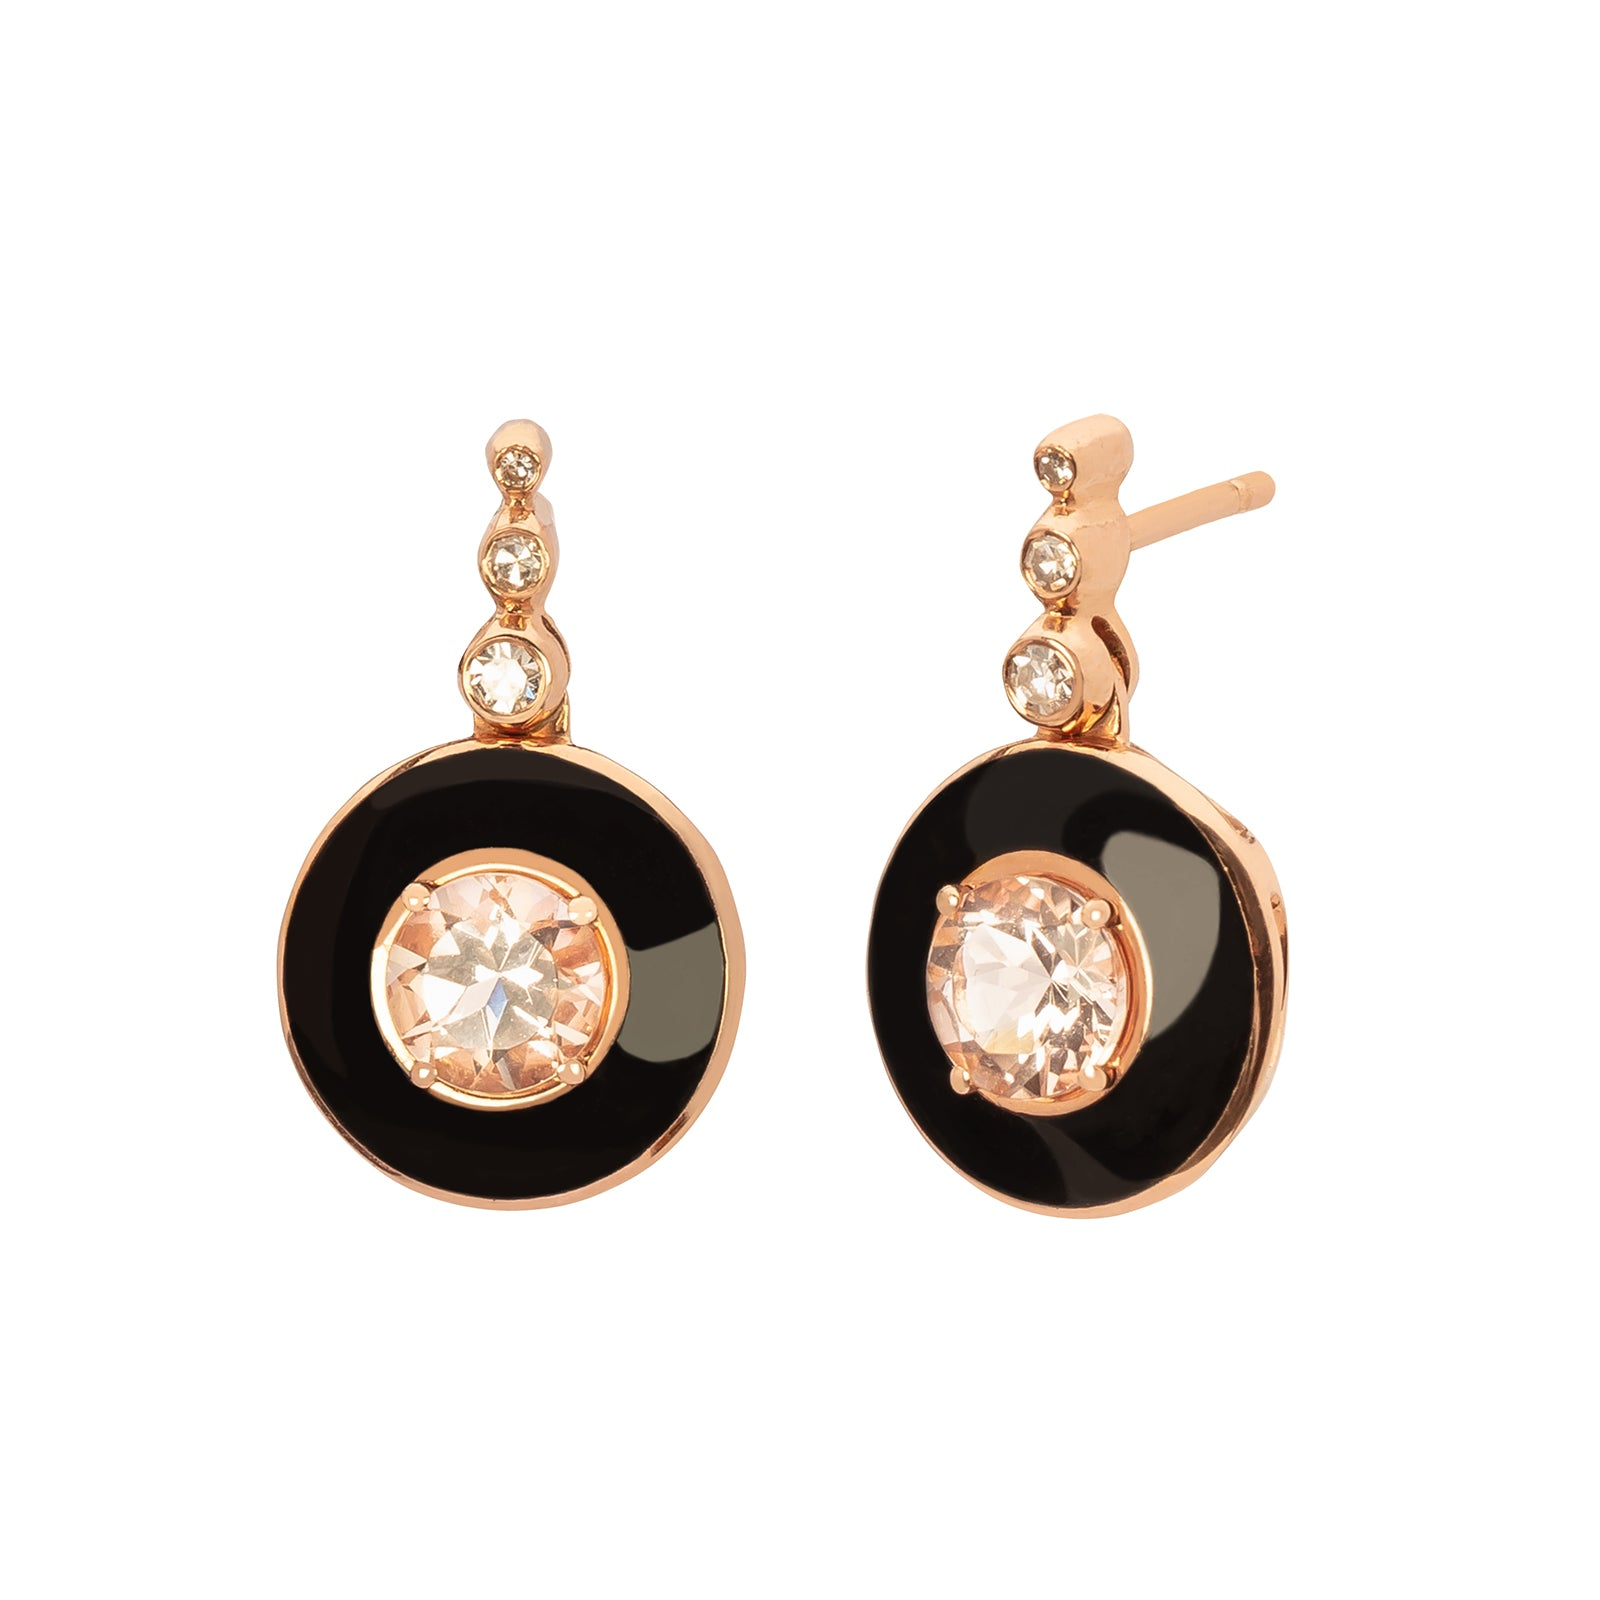 Selim Mouzannar Mina Earrings - White Diamond - Earrings - Broken English Jewelry